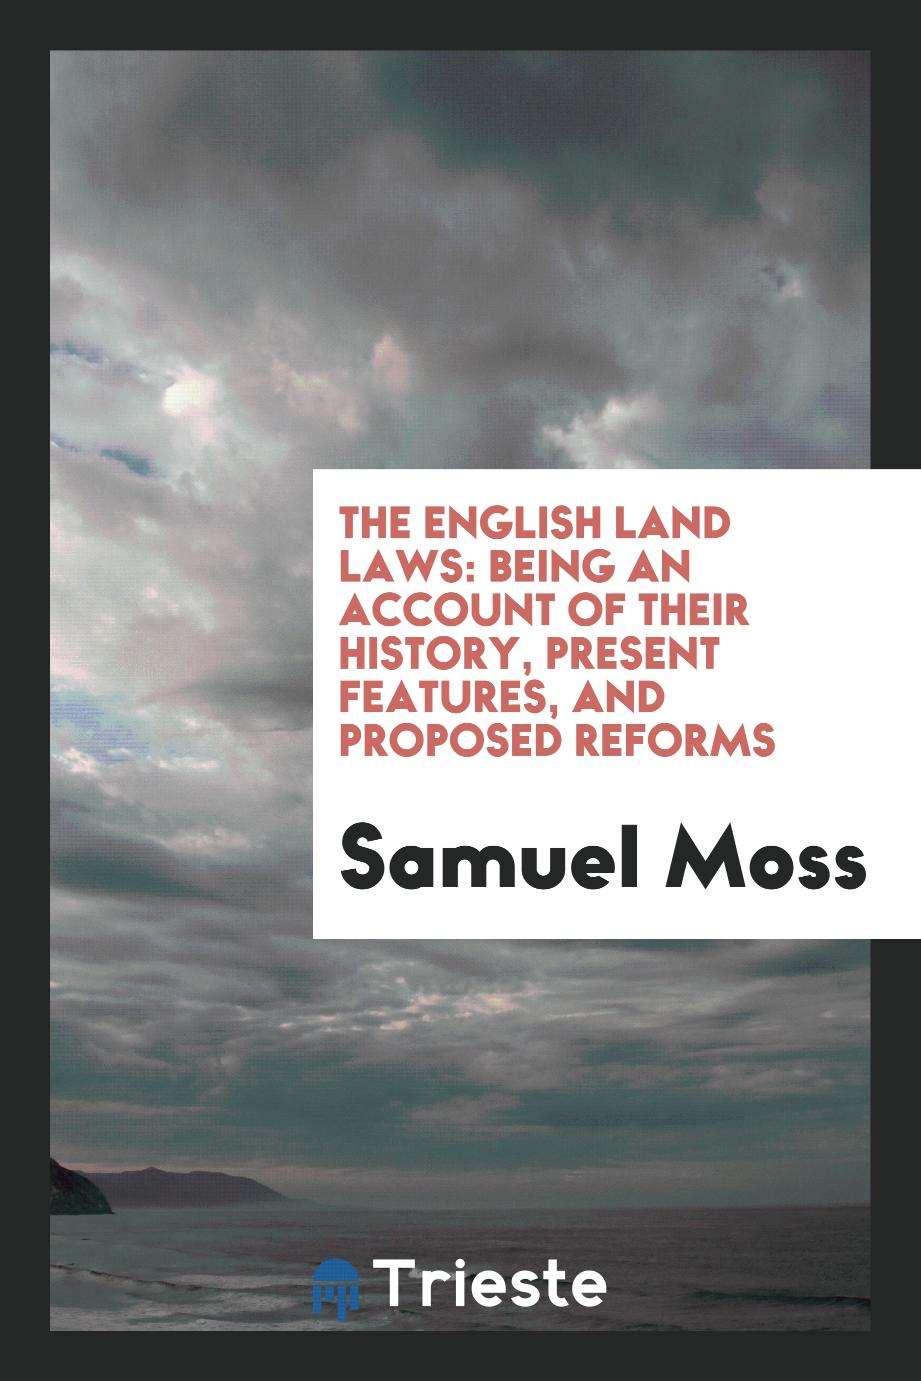 The English Land Laws: Being an Account of Their History, Present Features, and Proposed Reforms